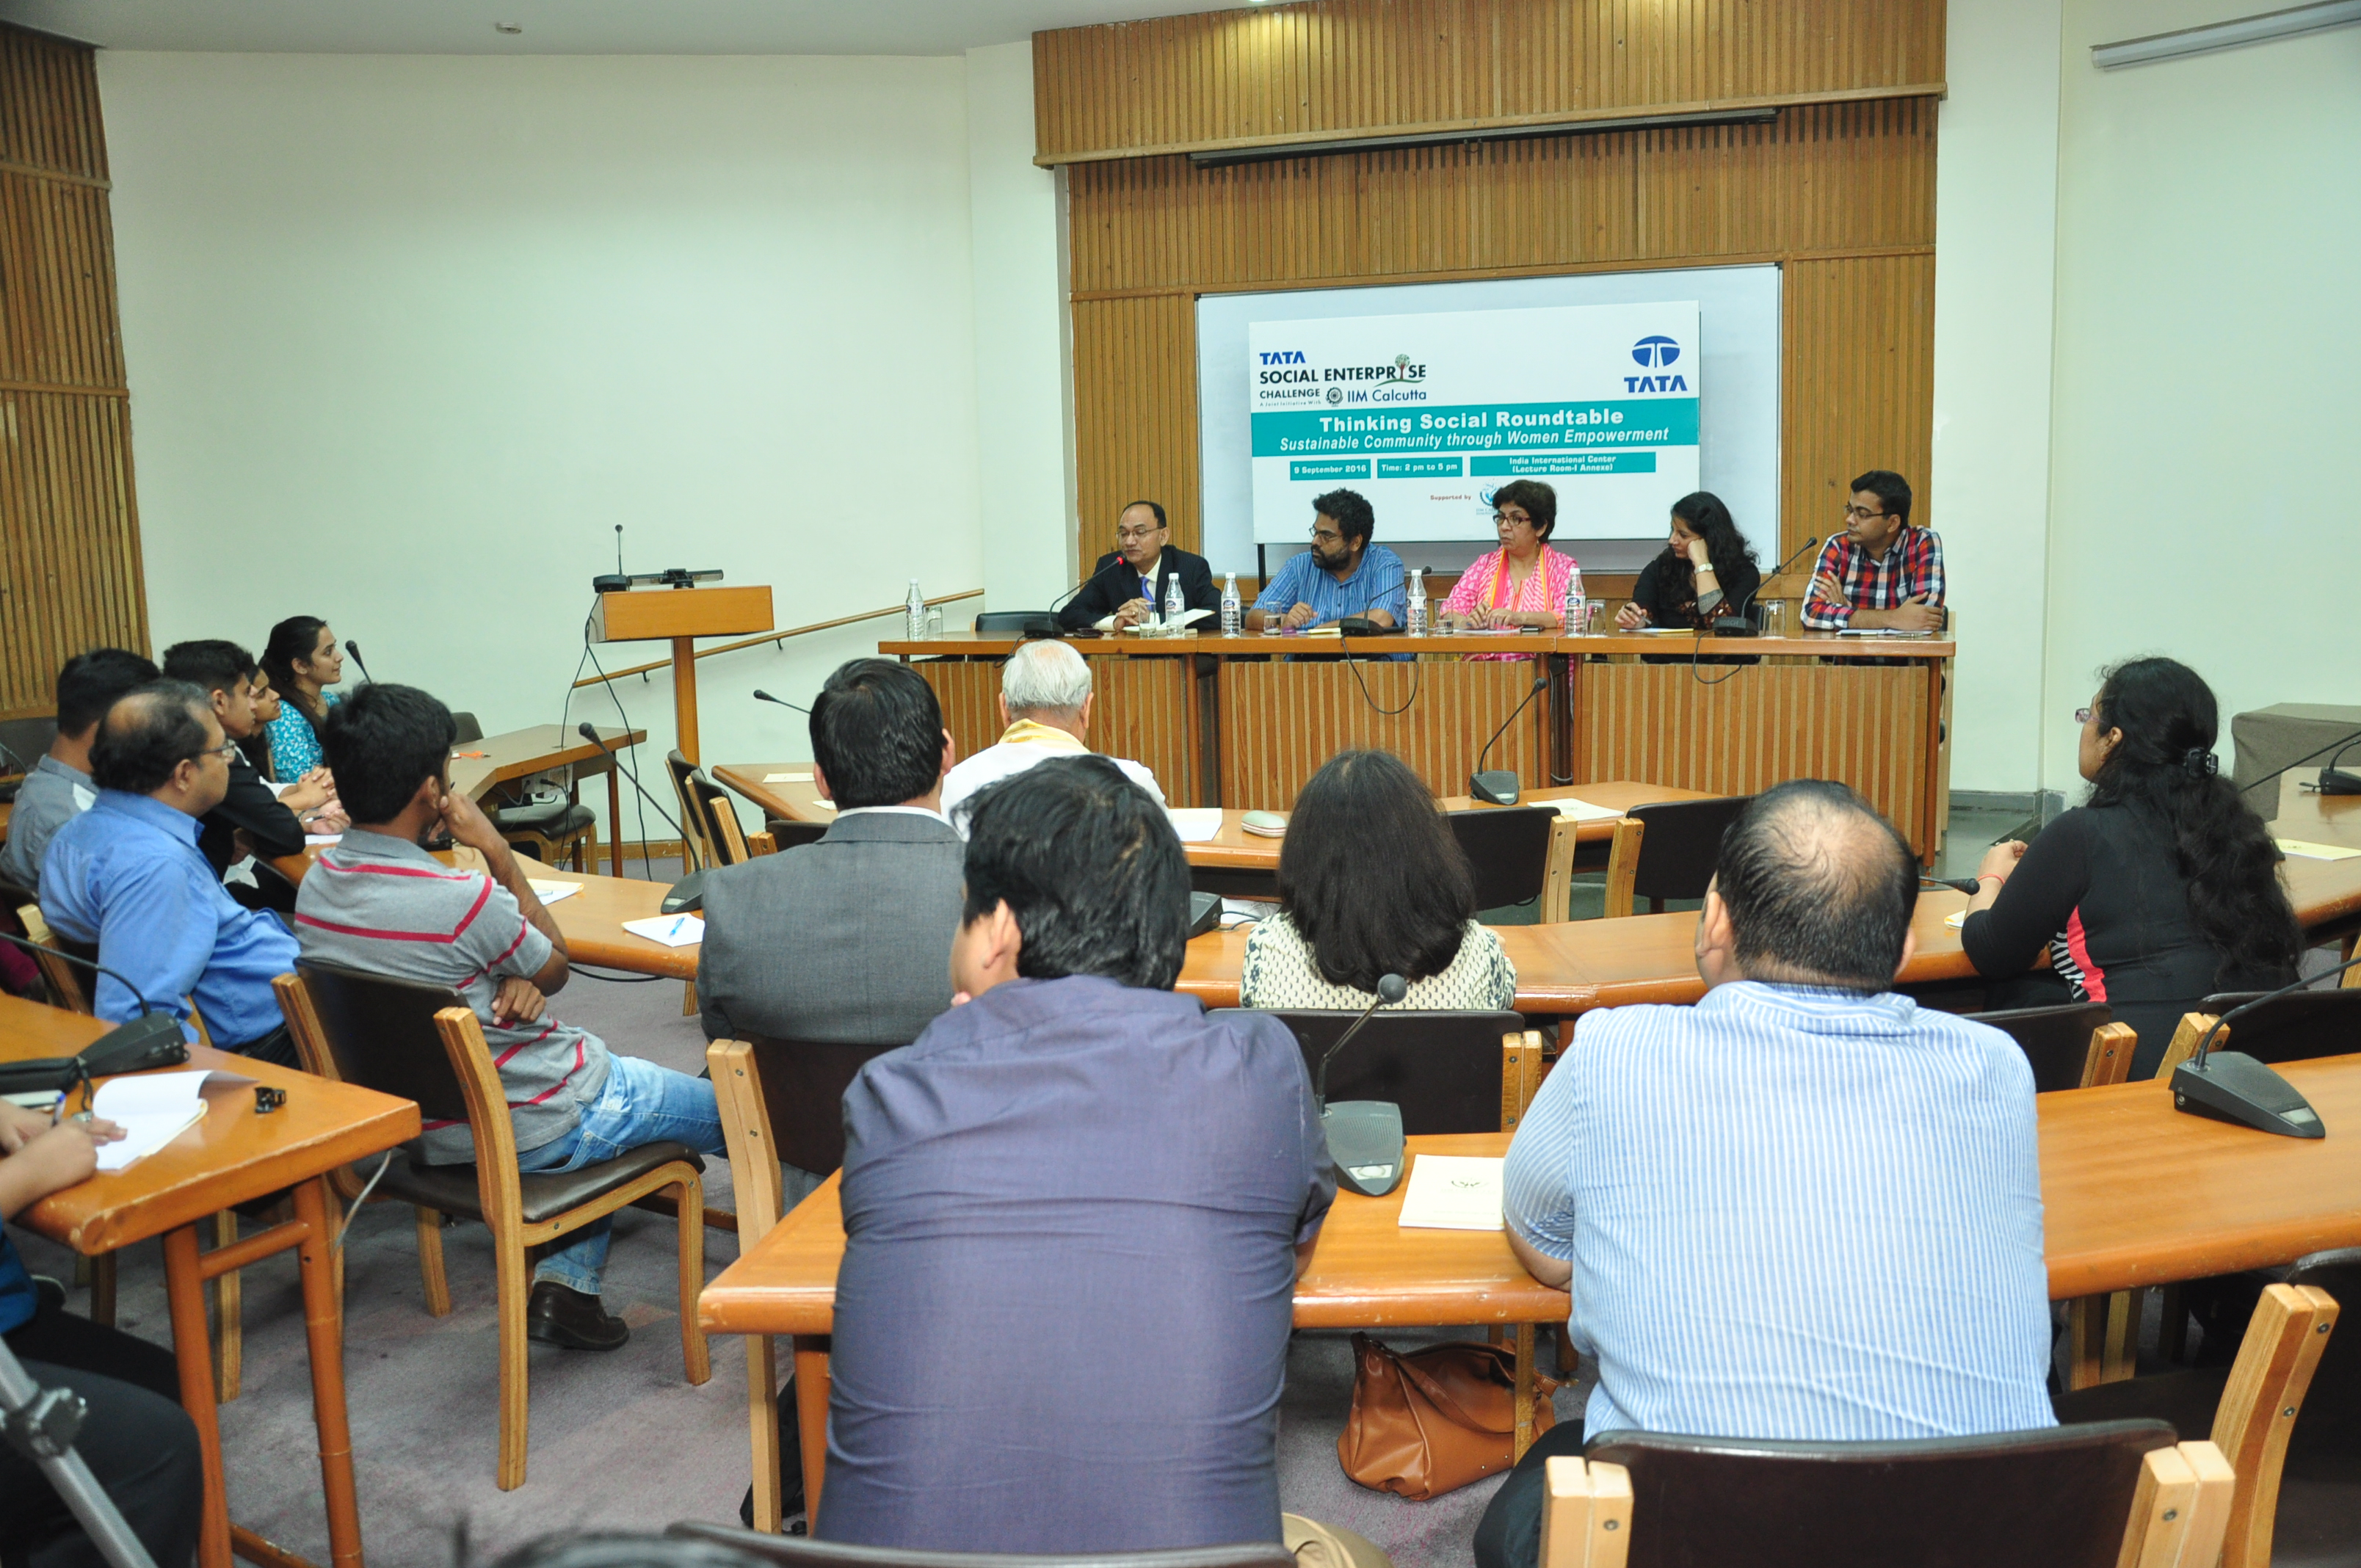 Thinking Social Roundtable – Delhi (9 September 2016)